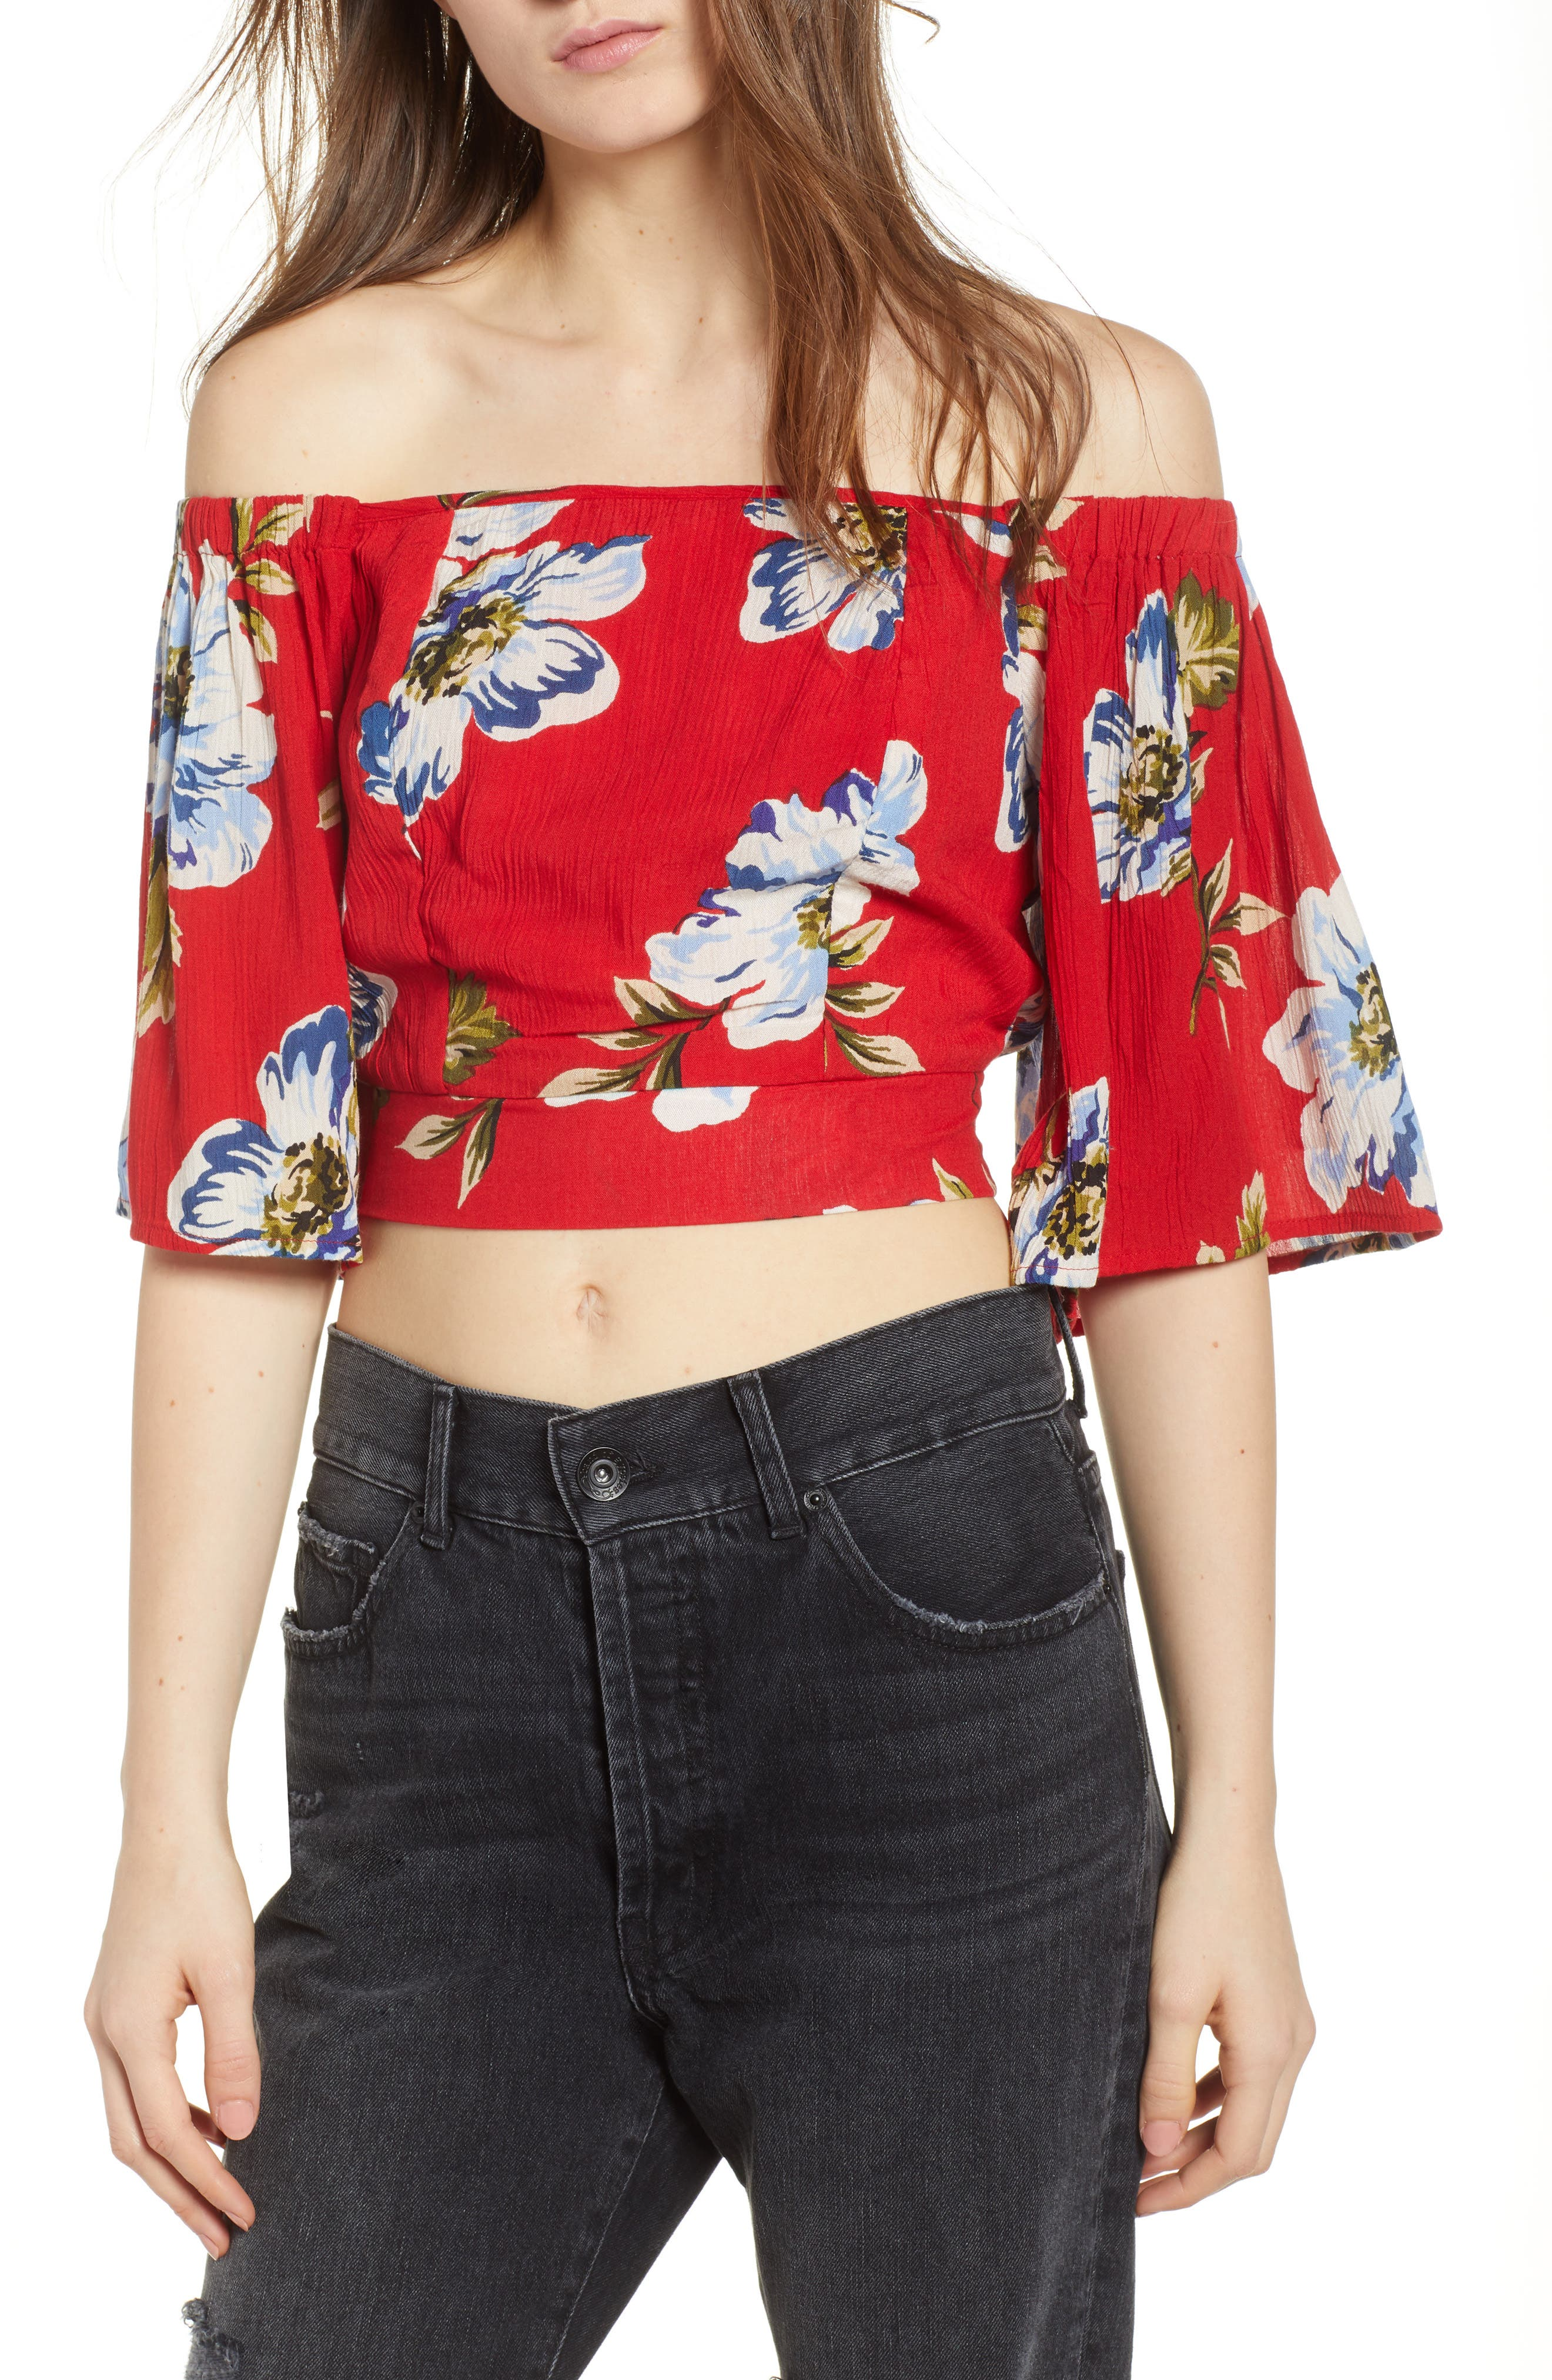 Blue Moon Floral Off the Shoulder Crop Top,                             Main thumbnail 1, color,                             Red/ Sky